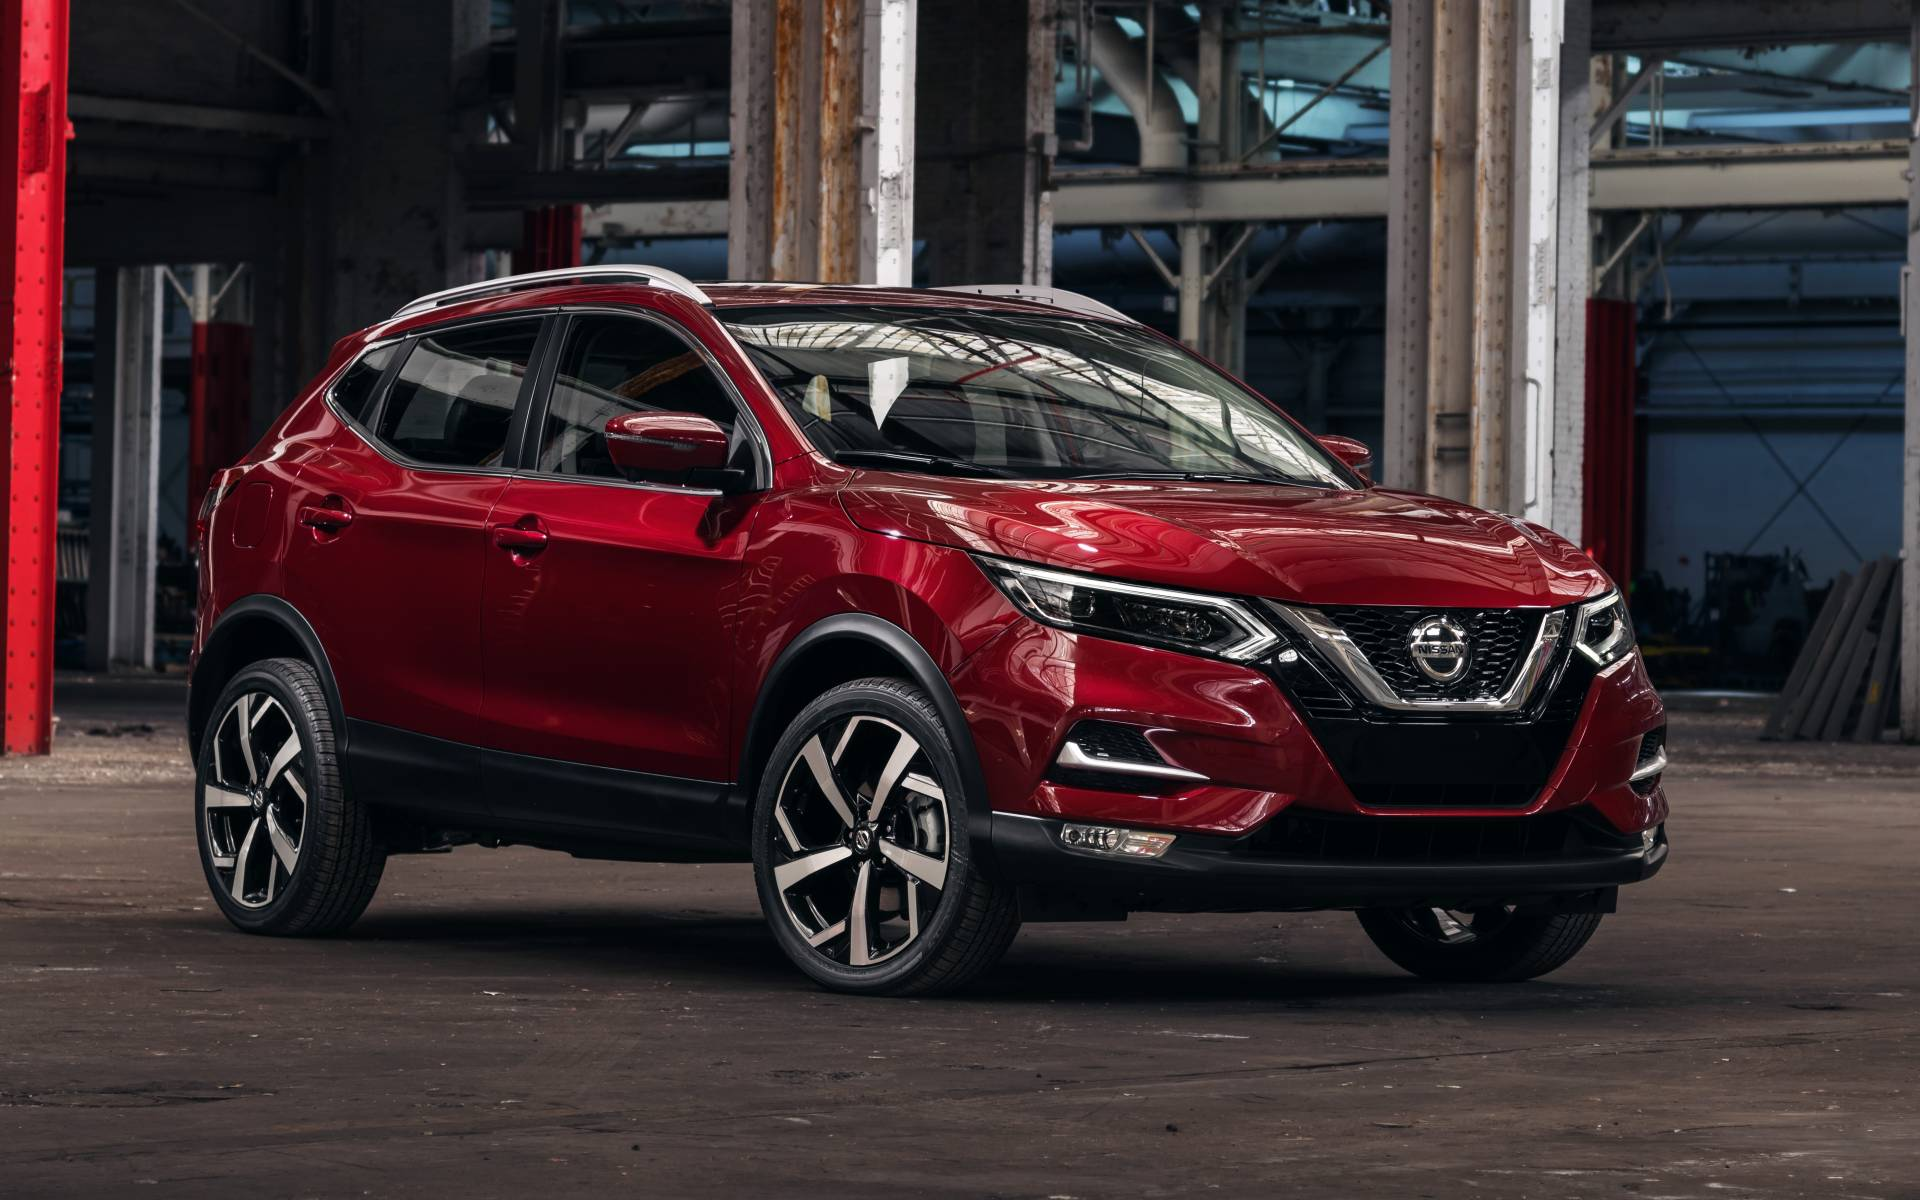 Nissan's good looking small Qashqui SUV gets some worthwhile updates.